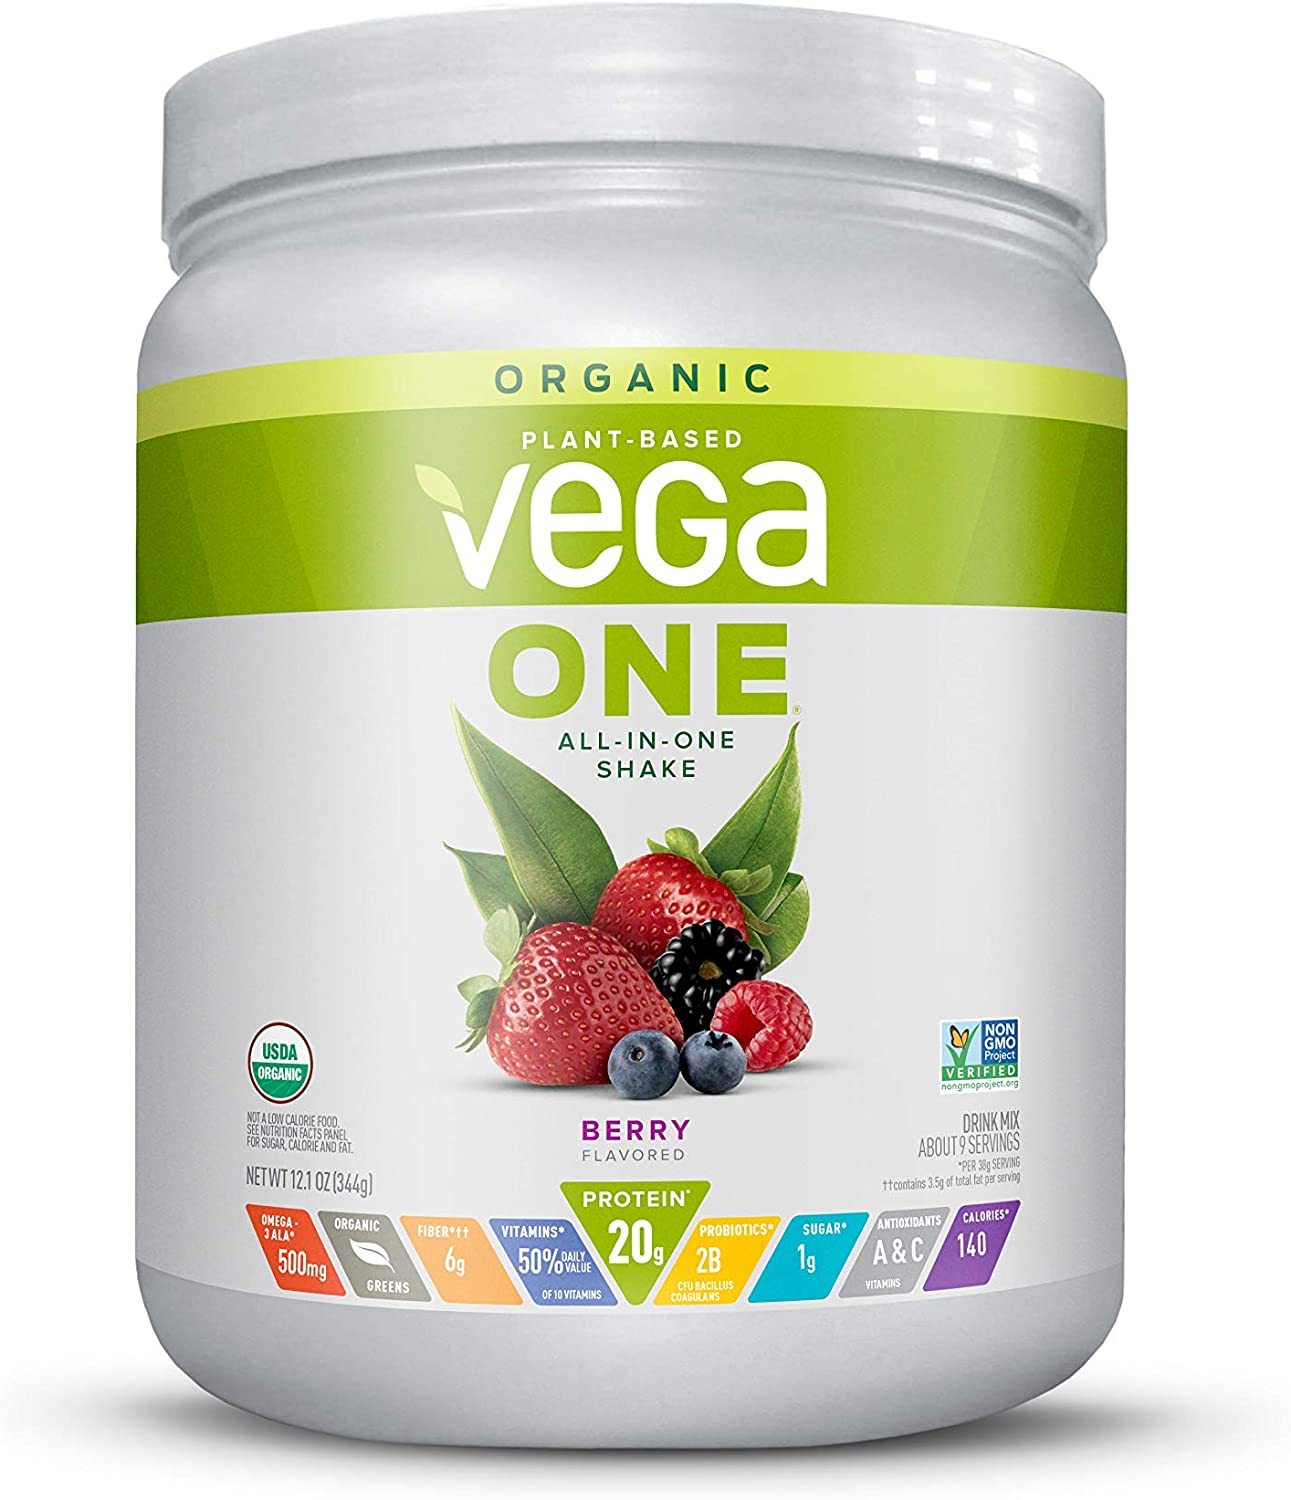 Vega One Organic Meal Replacement Plant Based Protein Powder, Berry - Vegan, Vegetarian, Gluten Free, Dairy Free with Vitamins, Minerals, Antioxidants and Probiotics (9 Servings, 12.1oz)